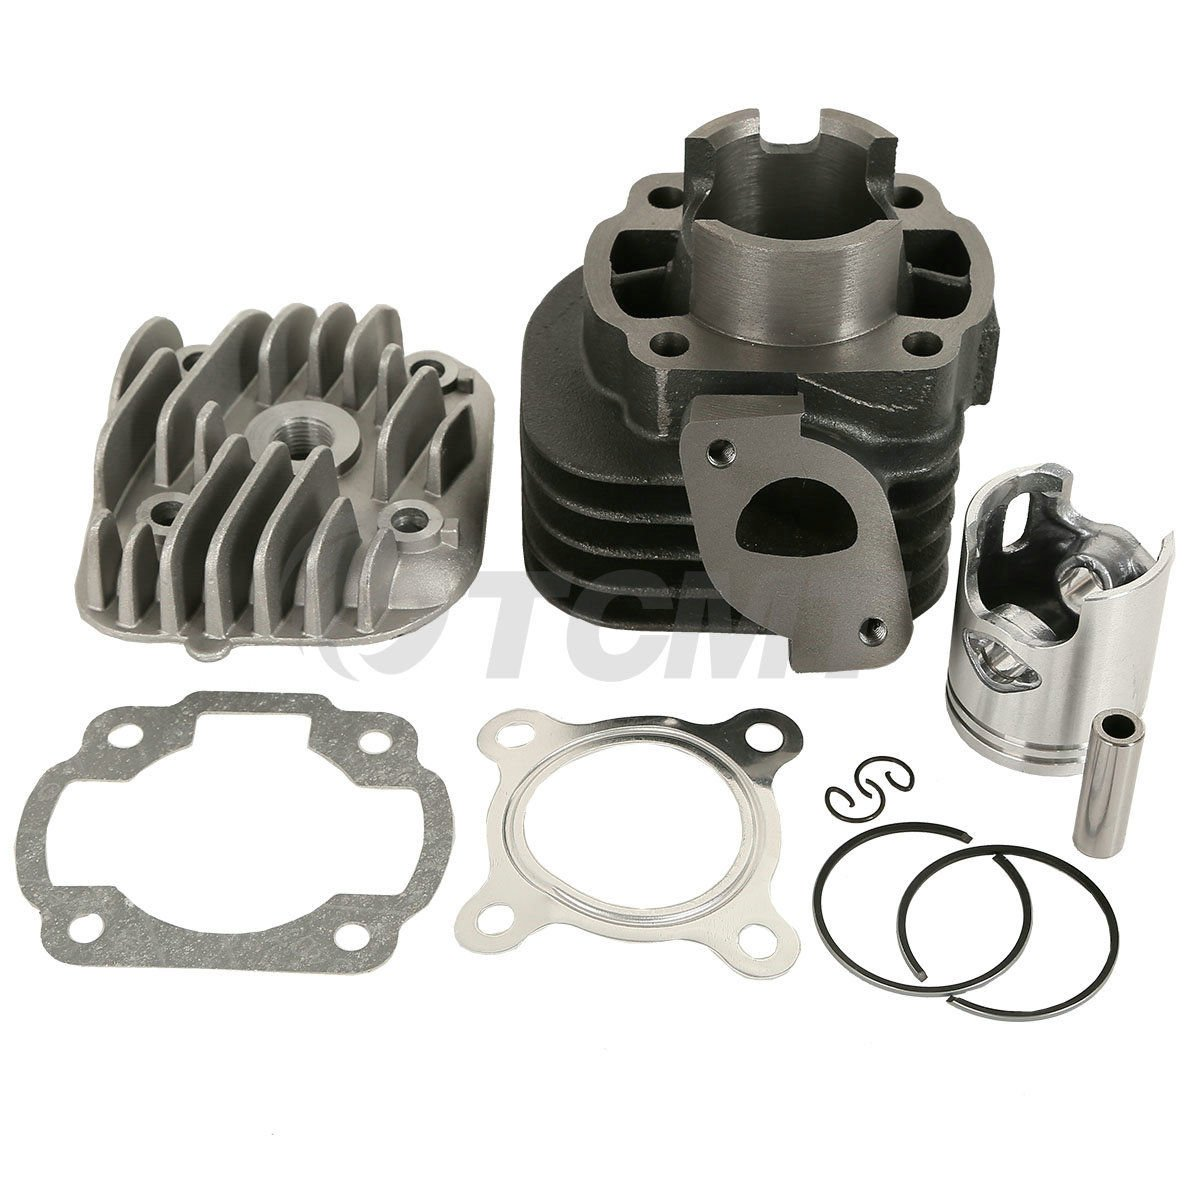 TCMT Cylinder Piston Top End Kit For Polaris Scrambler 50 01-03 Predator 50 04-07 ATV